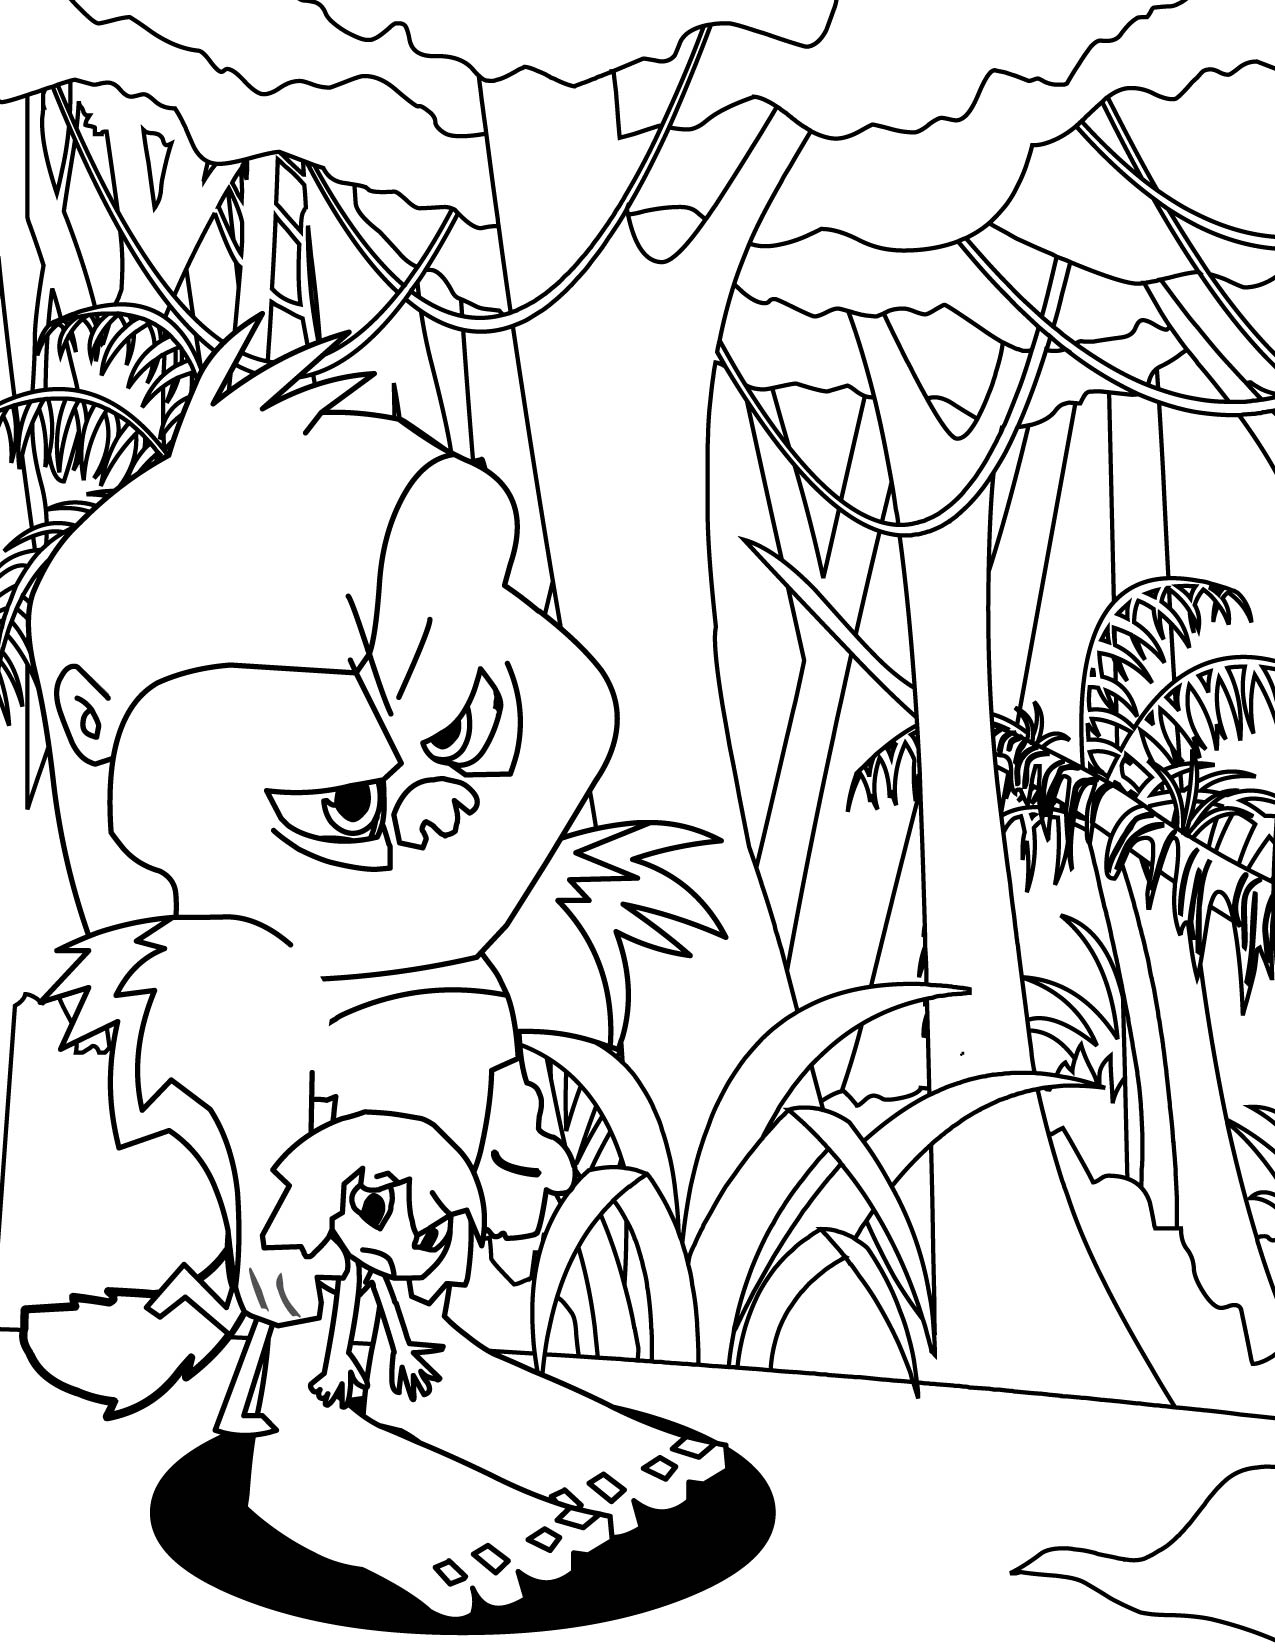 primary games coloring pages - photo#3